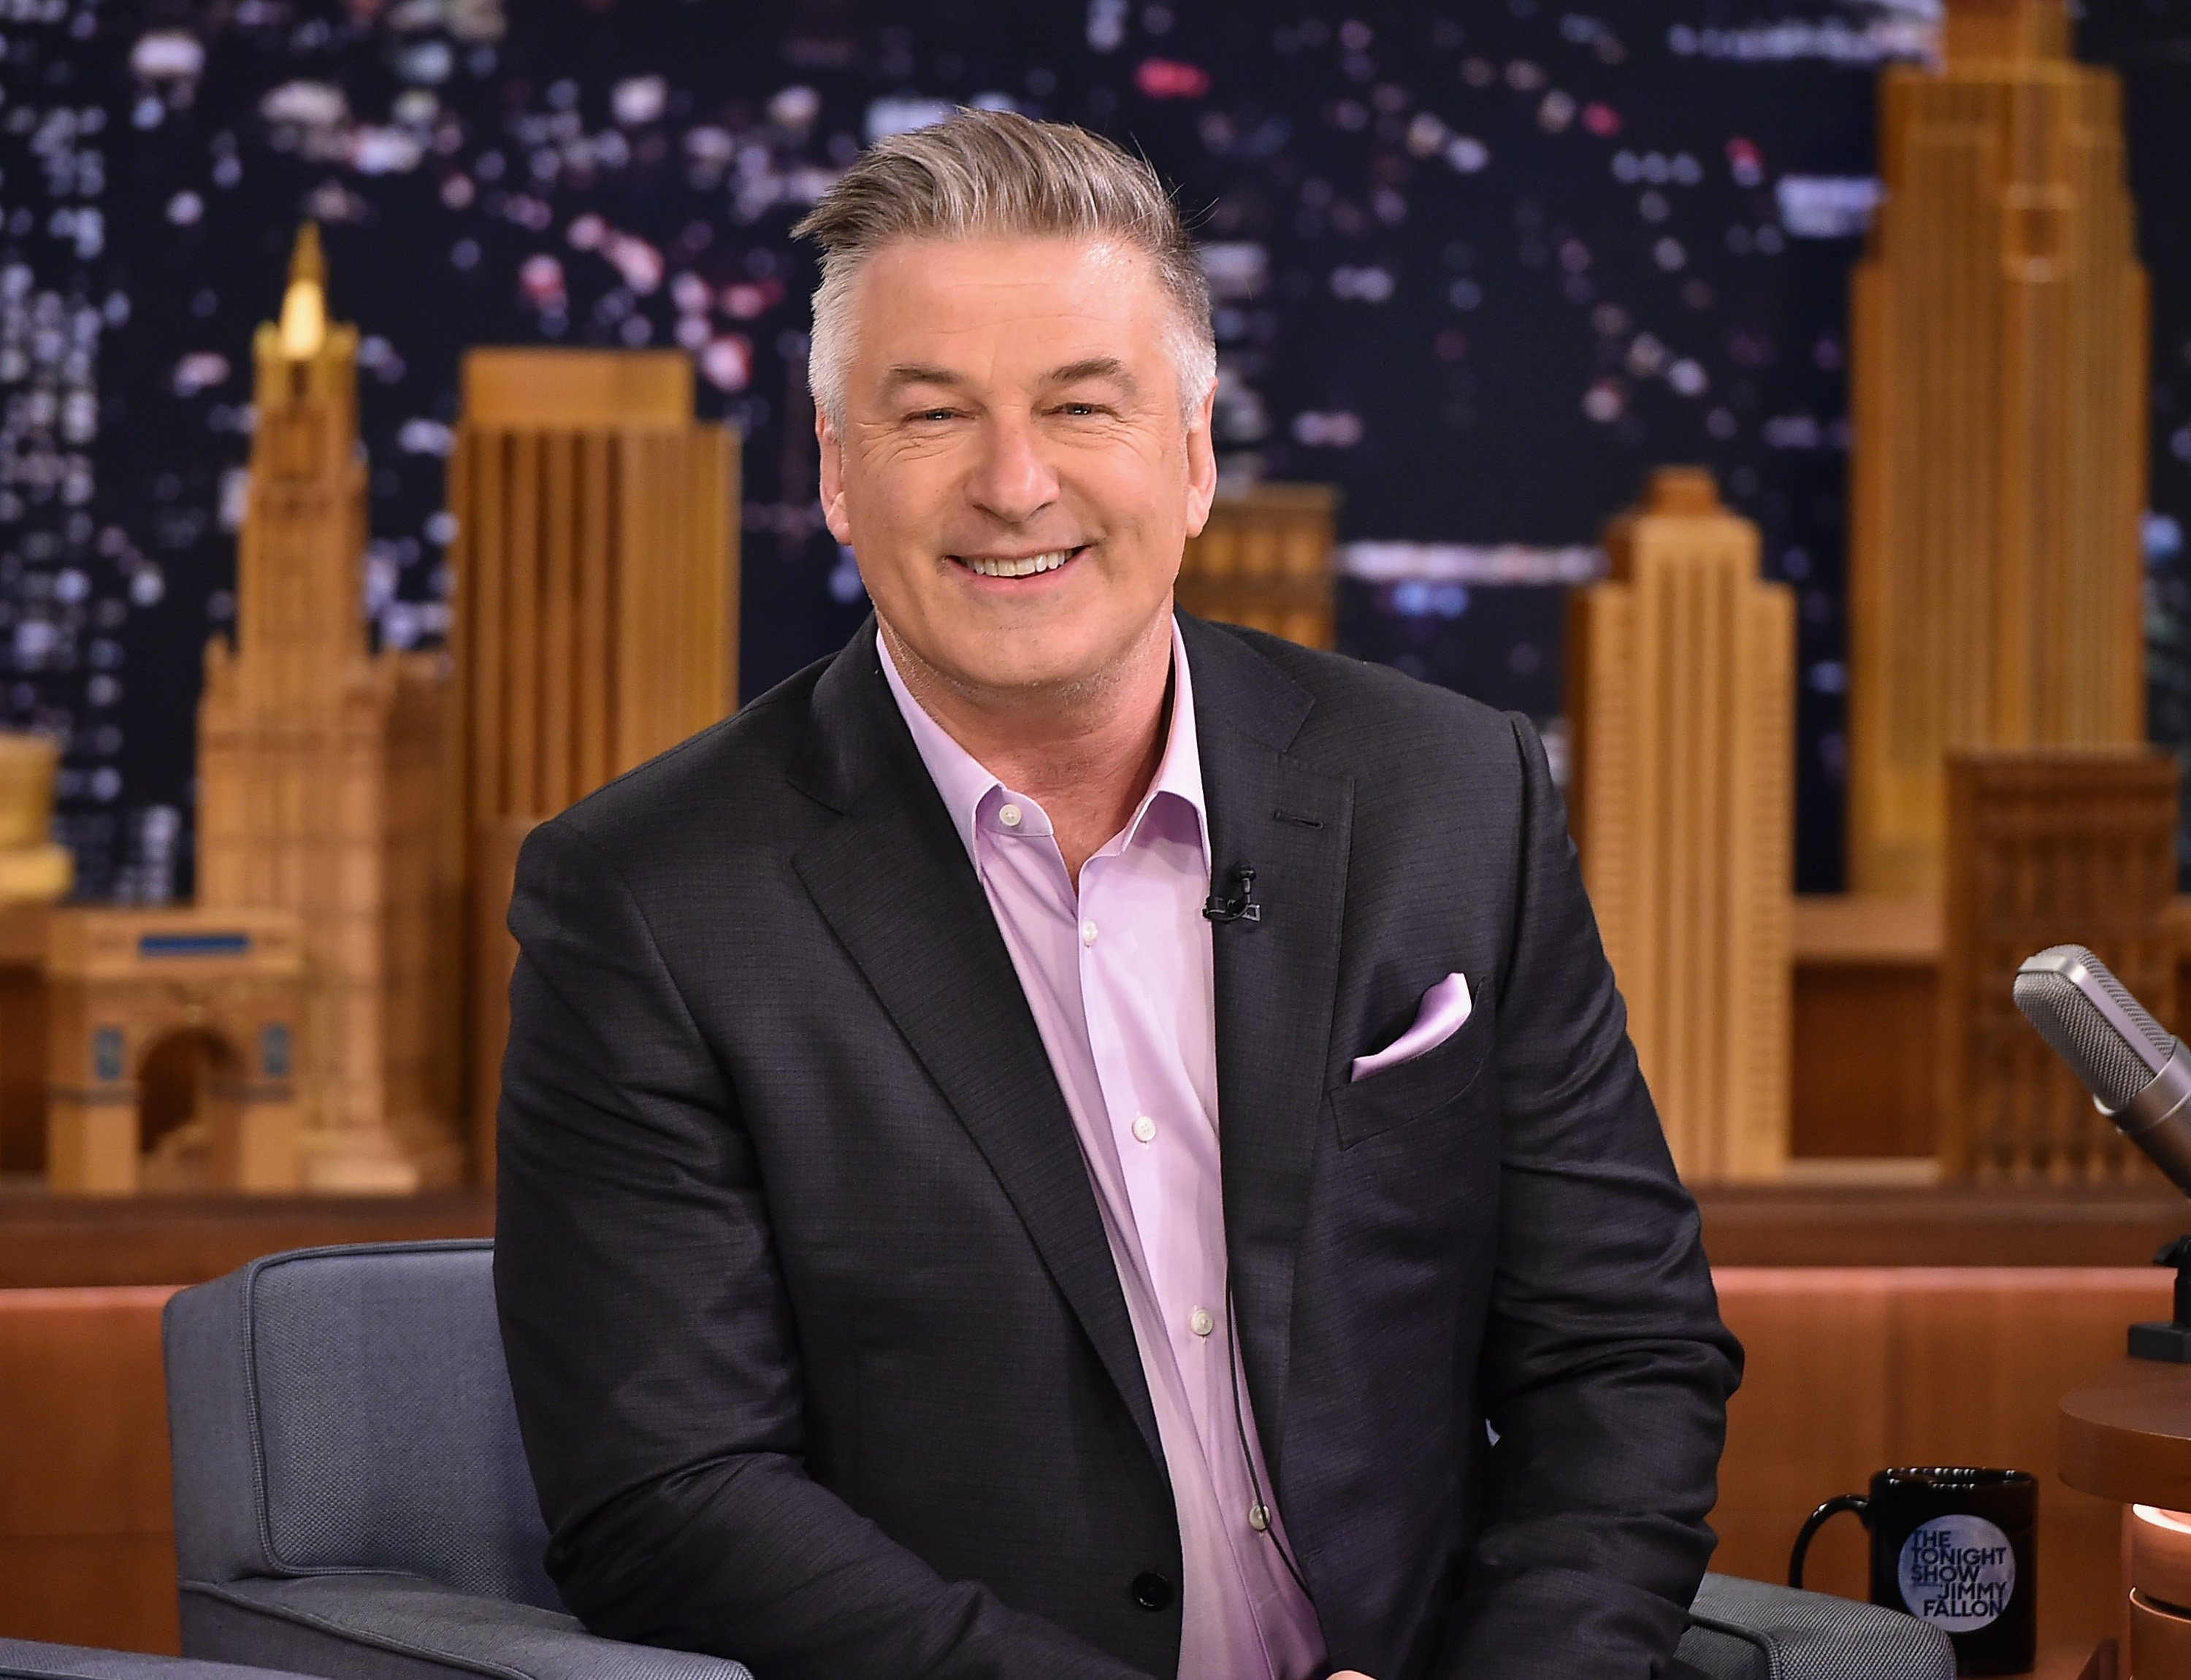 """Alec Baldwin Visits """"The Tonight Show Starring Jimmy Fallon"""" at Rockefeller Center on February 9, 2017 in New York City   Photo: Getty Images"""